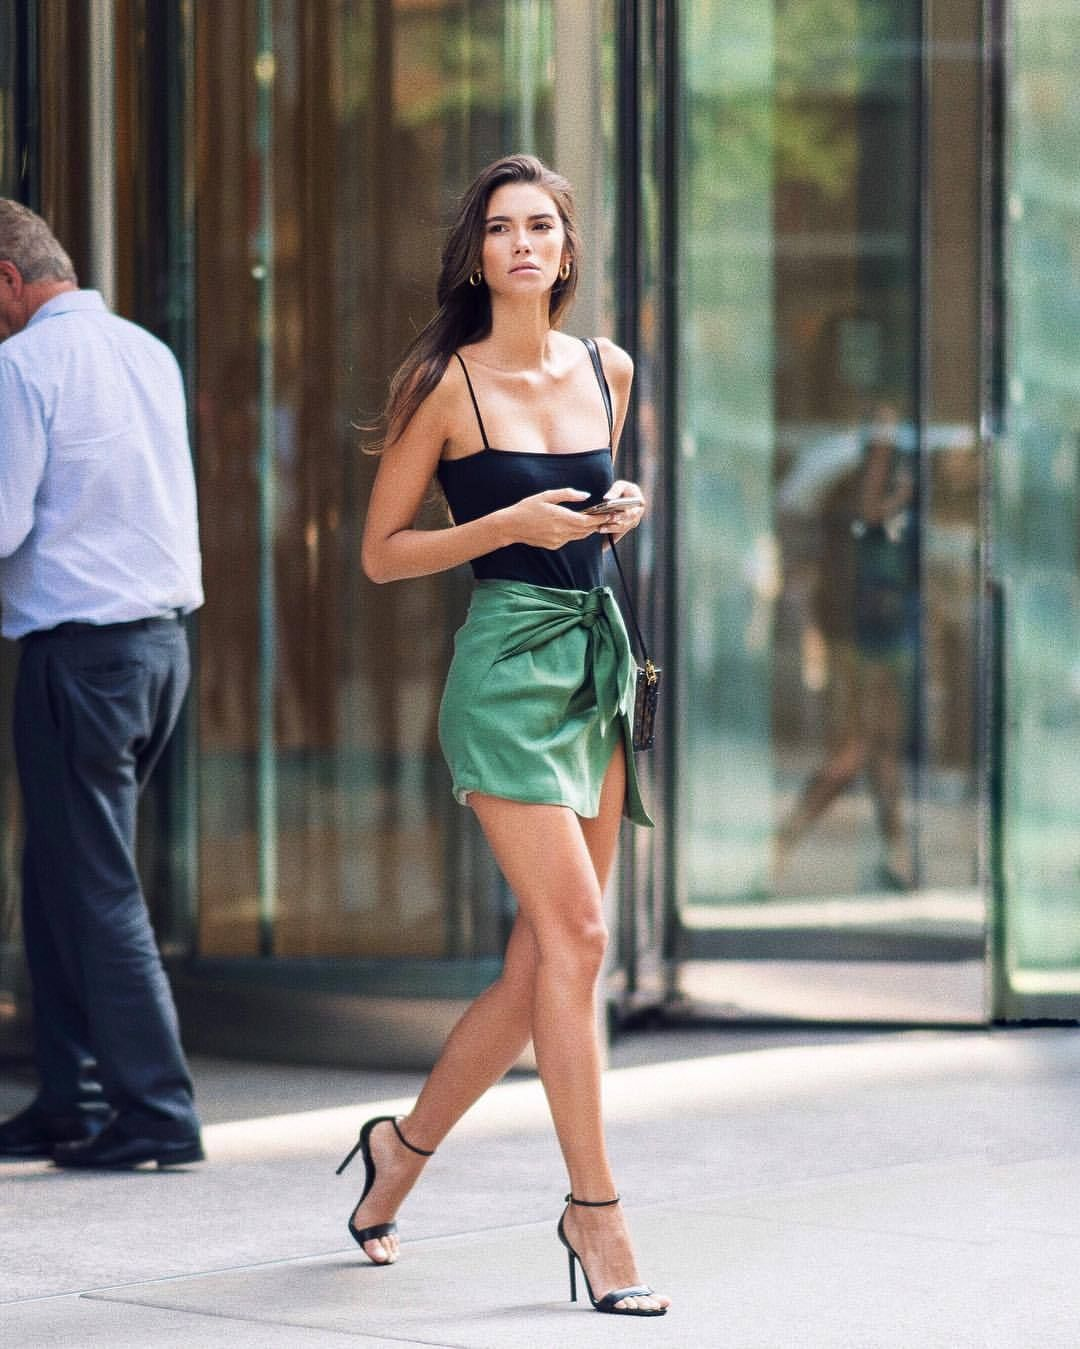 Fashion Summer trends tumblr pictures forecasting dress in spring in 2019